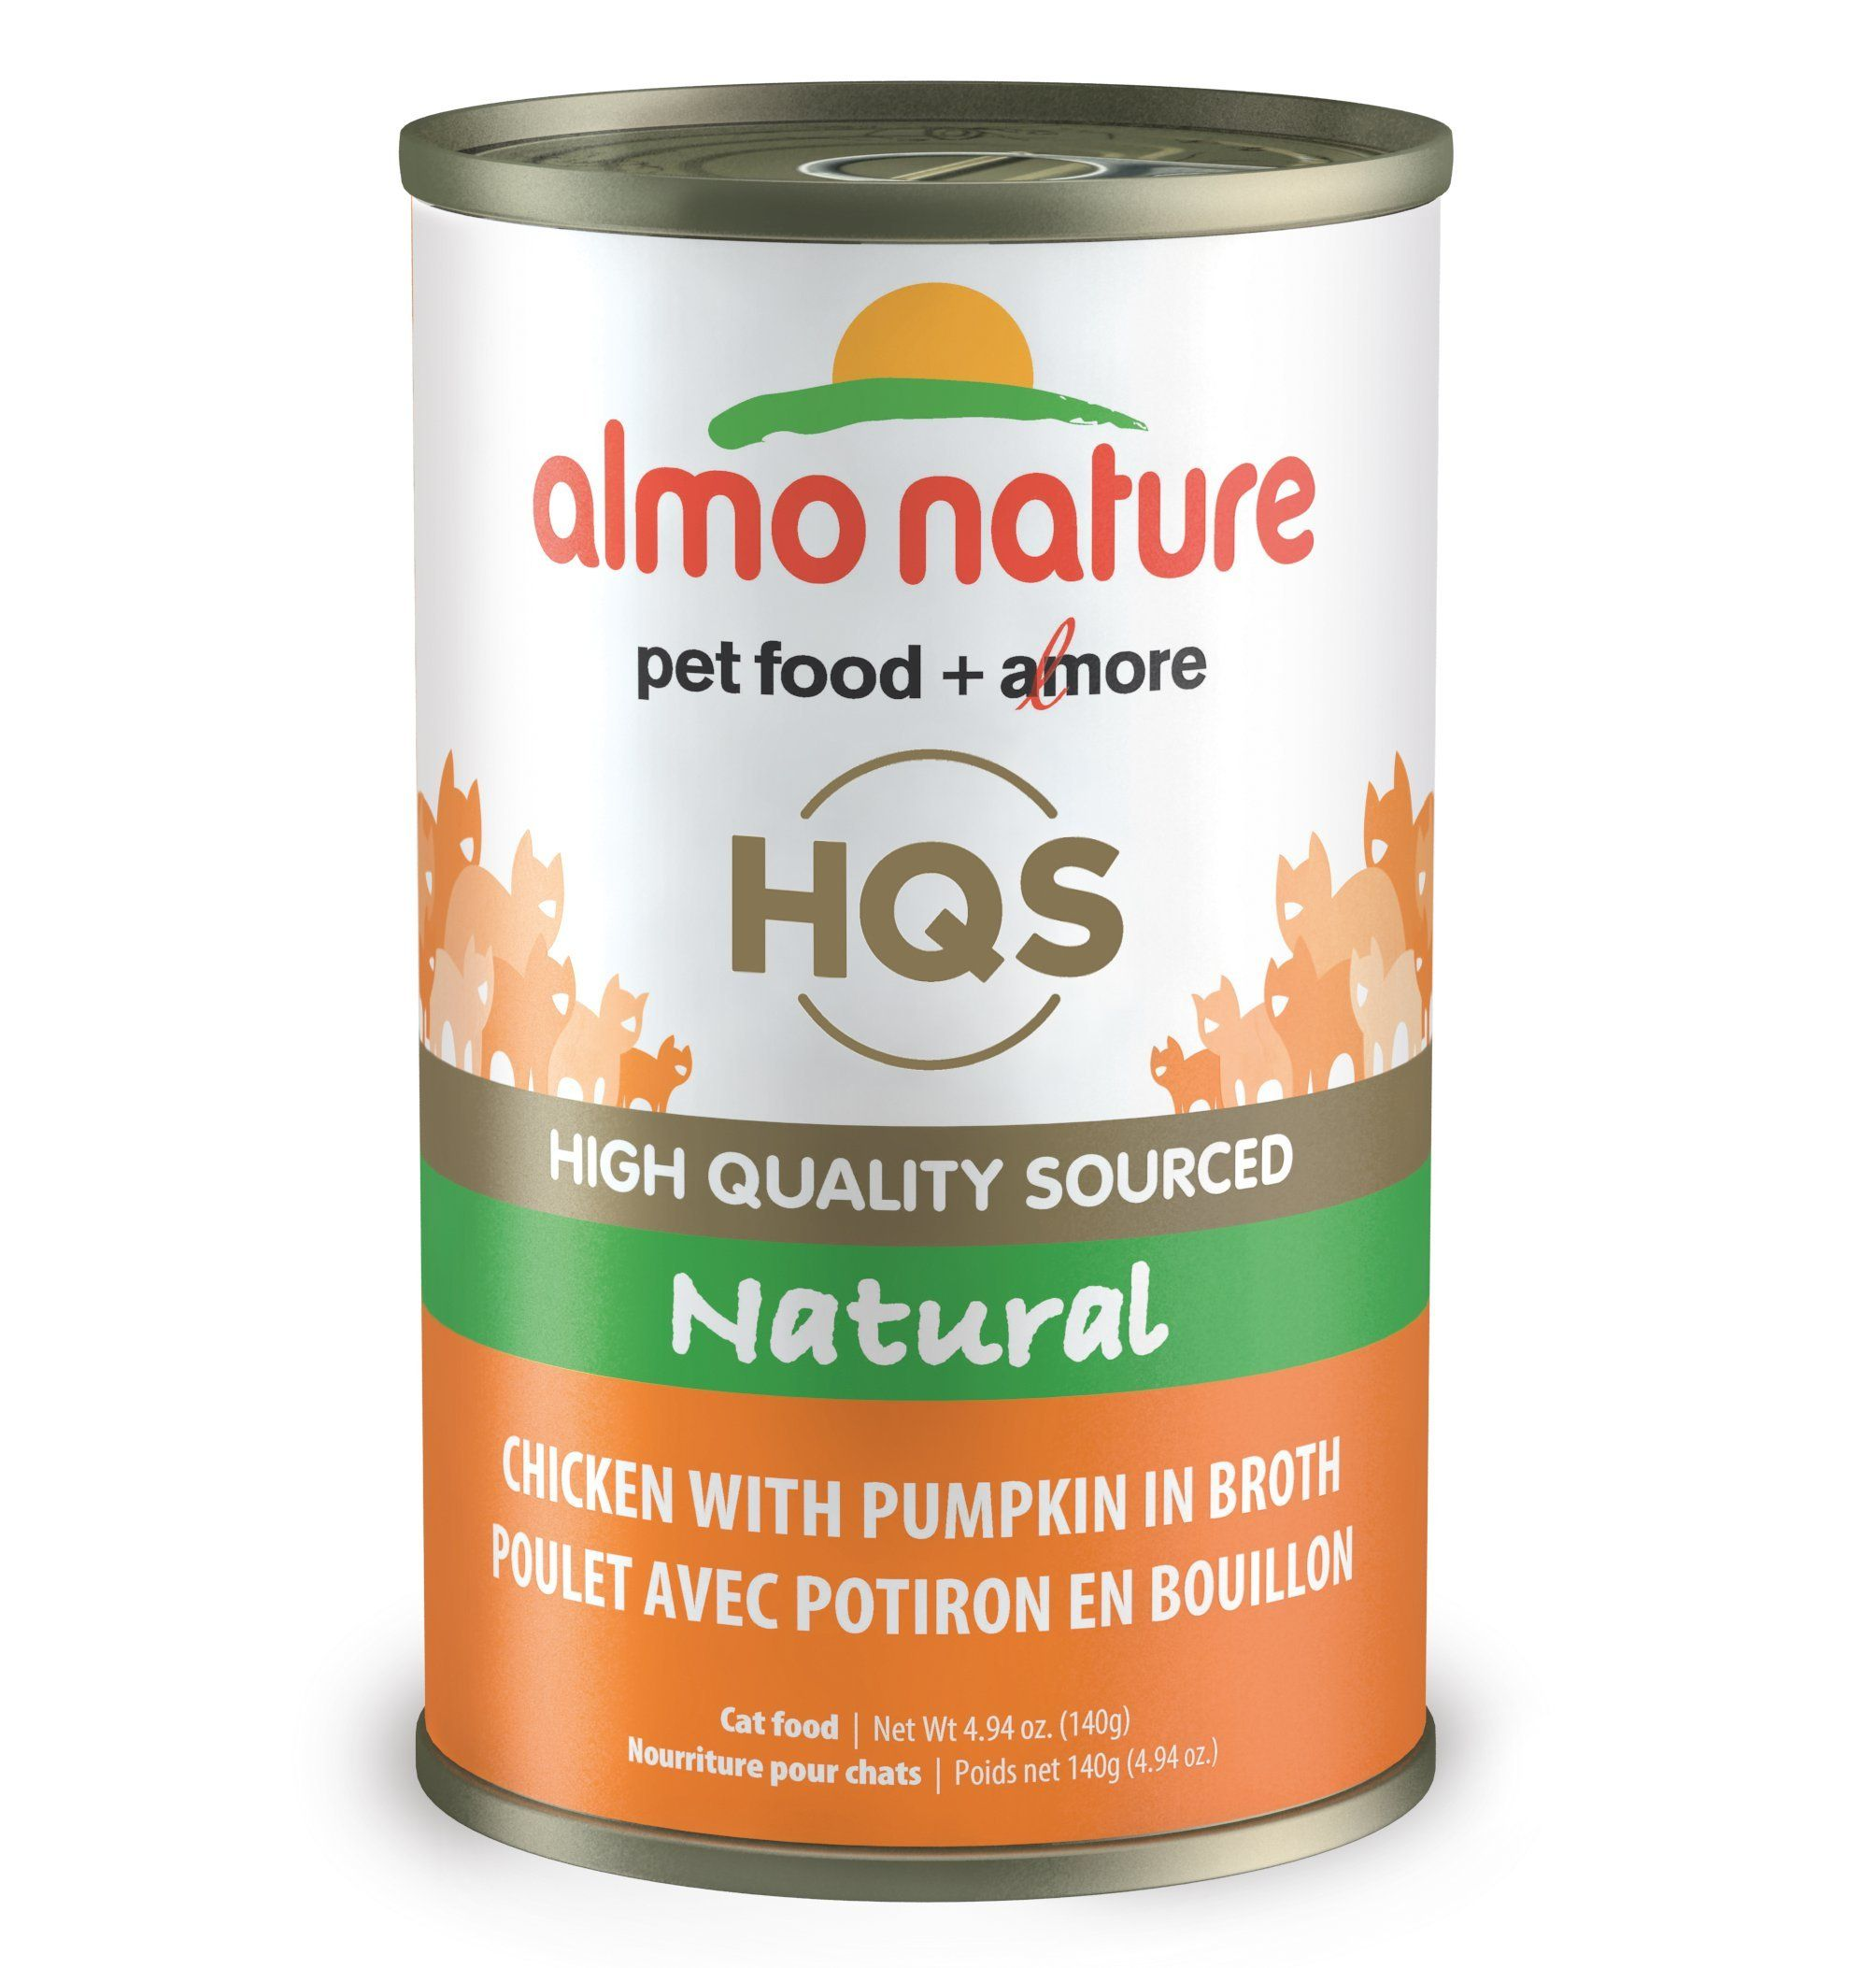 Almo Nature Hqs Legend Natural Cat Chicken With Pumpkin 24 Pack Of 4 94oz 140g Cans Continue To The Product Natural Chicken Canned Cat Food Chicken Pumpkin